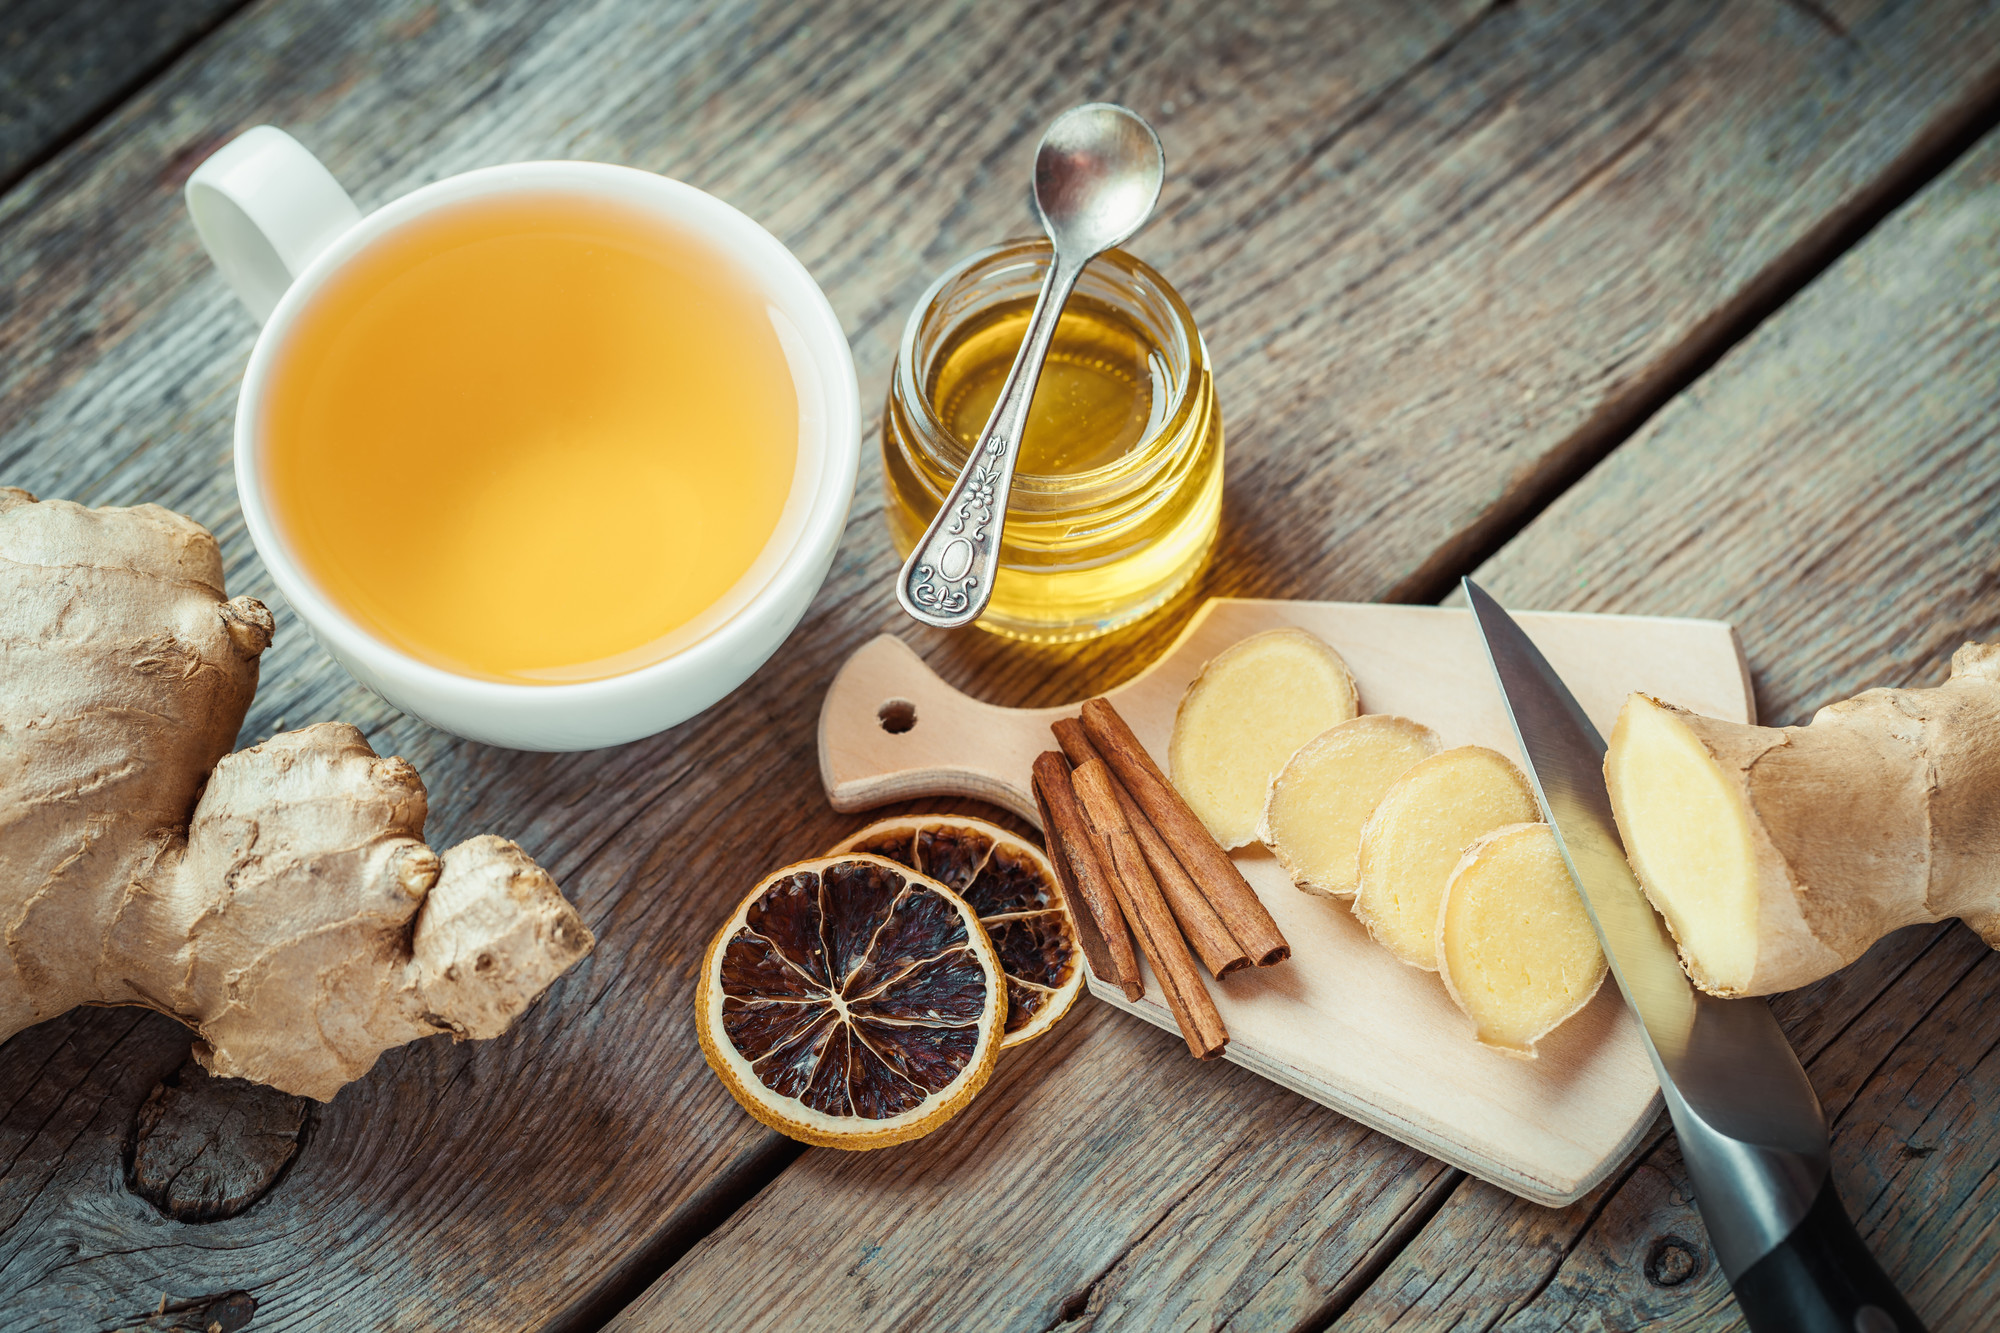 Ginger on cutting board, jar of honey, tea cup on kitchen table. Top view. spadreams kapha